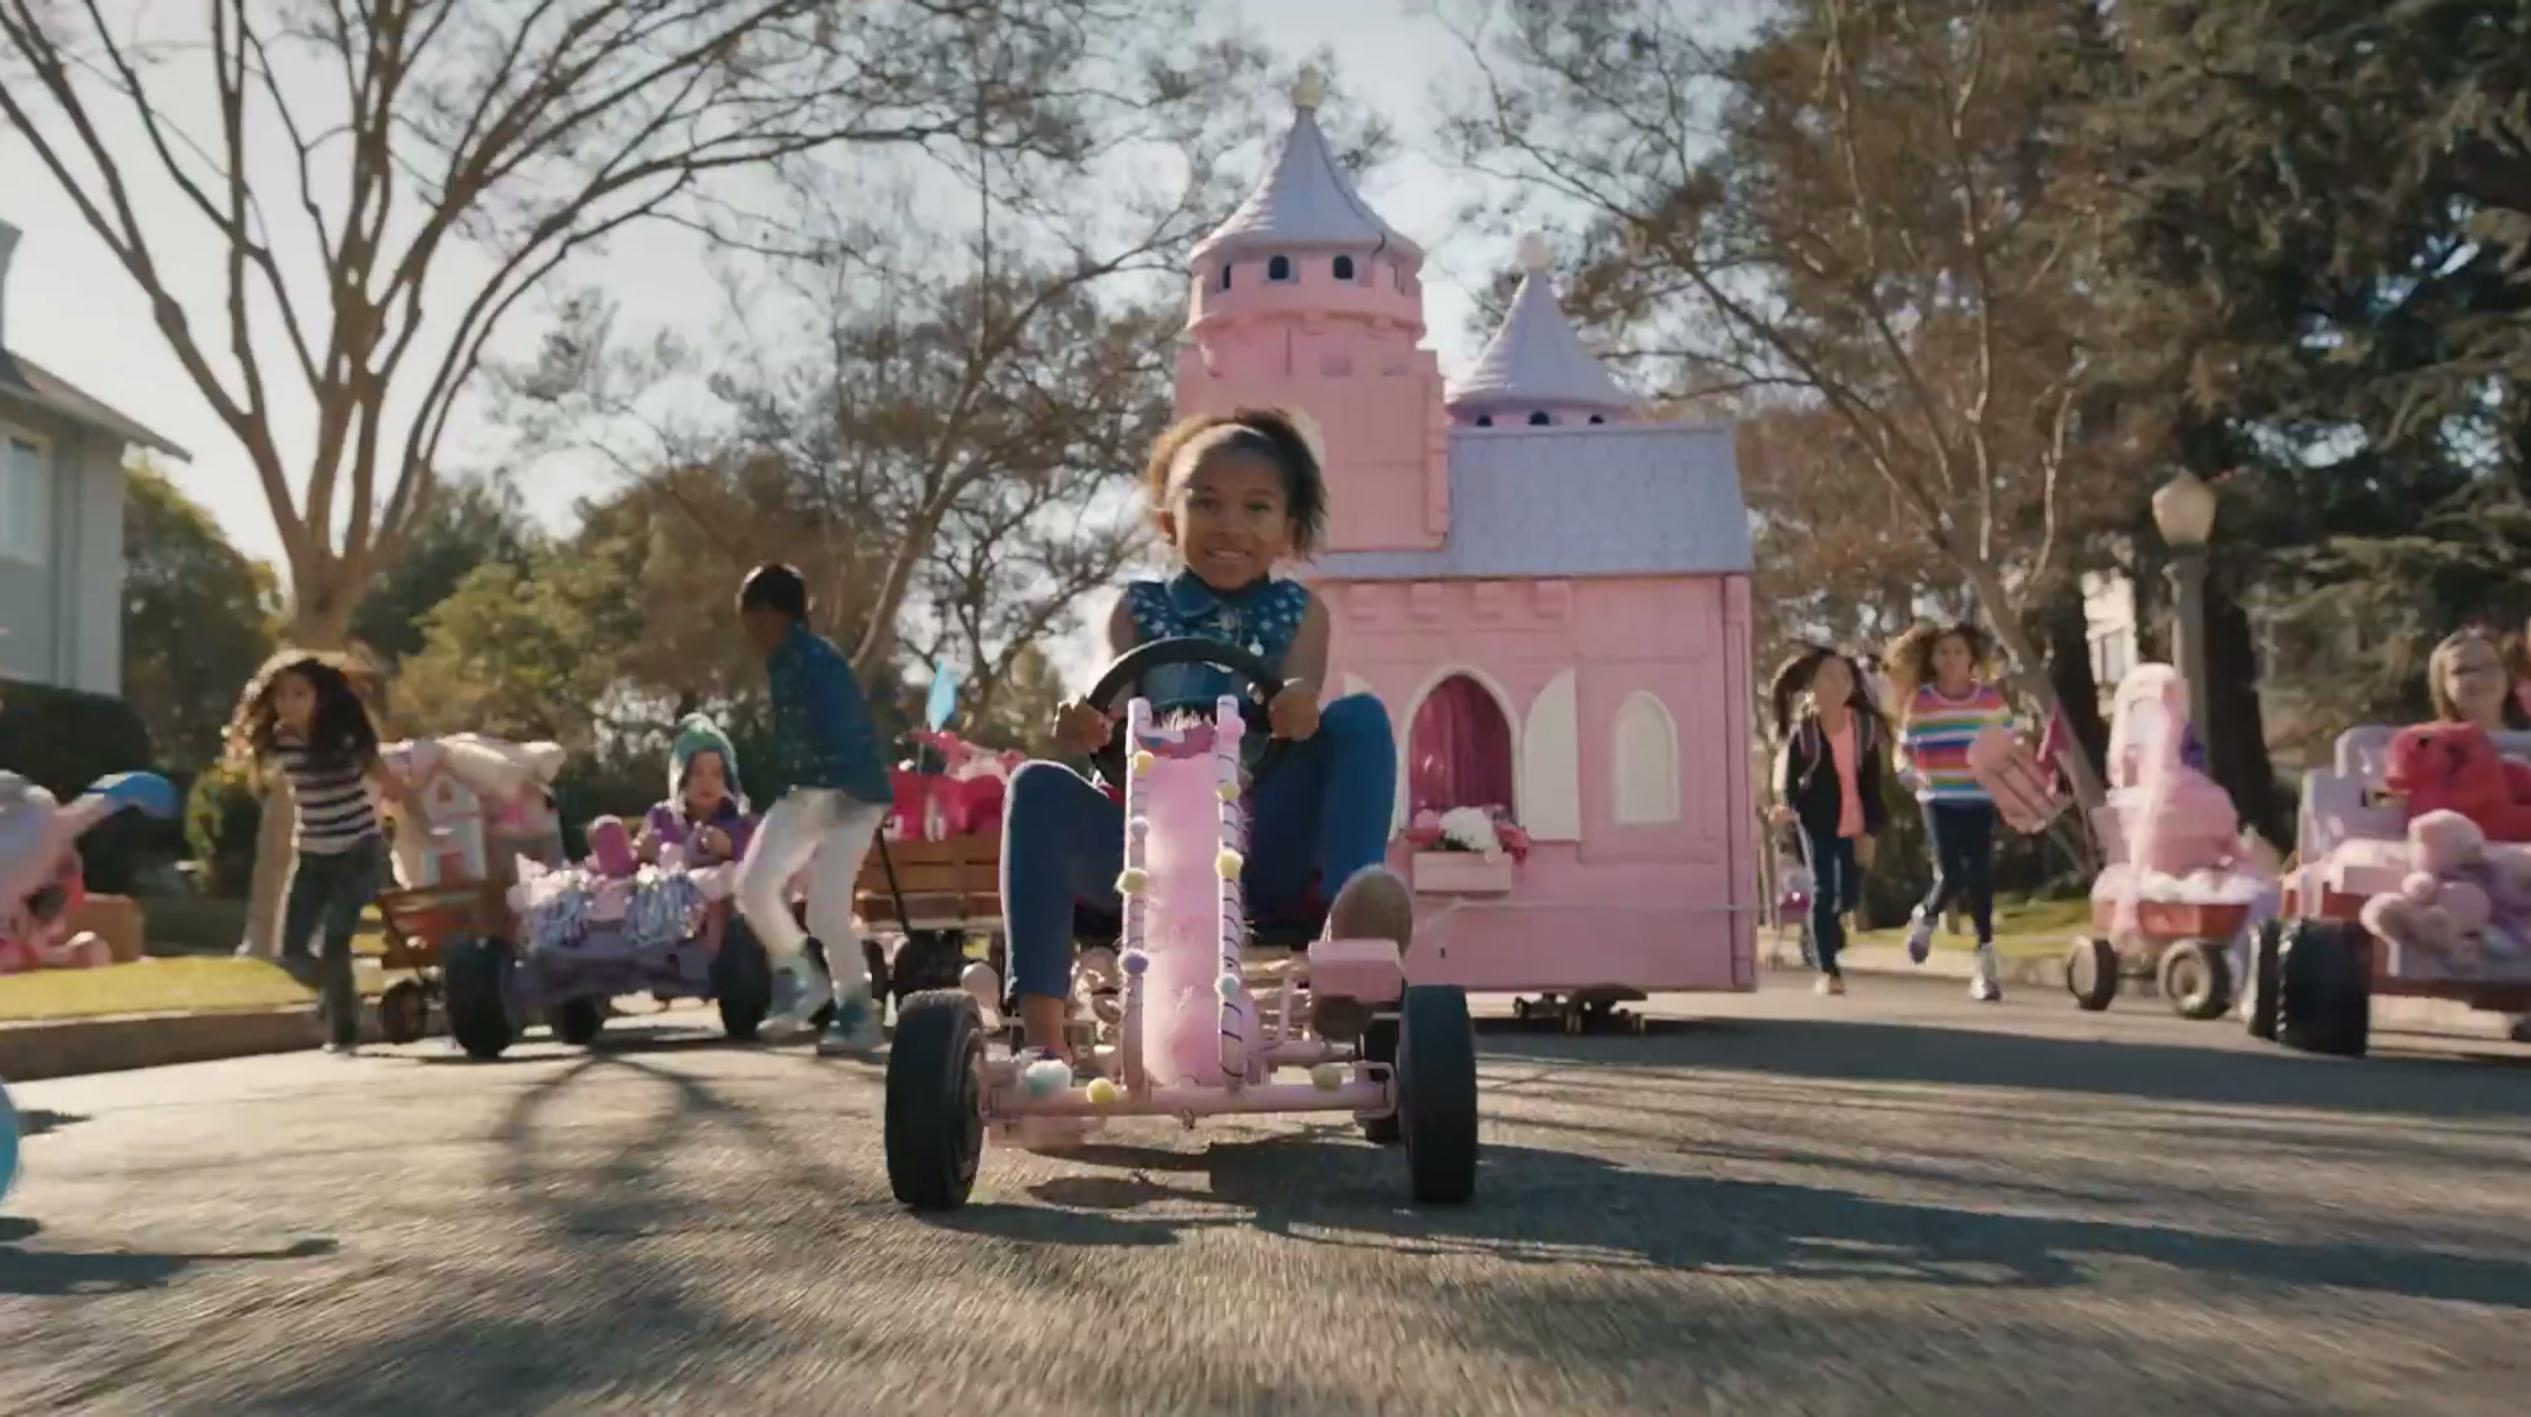 Image: A commercial for GoldieBlox that ran during the Super Bowl.